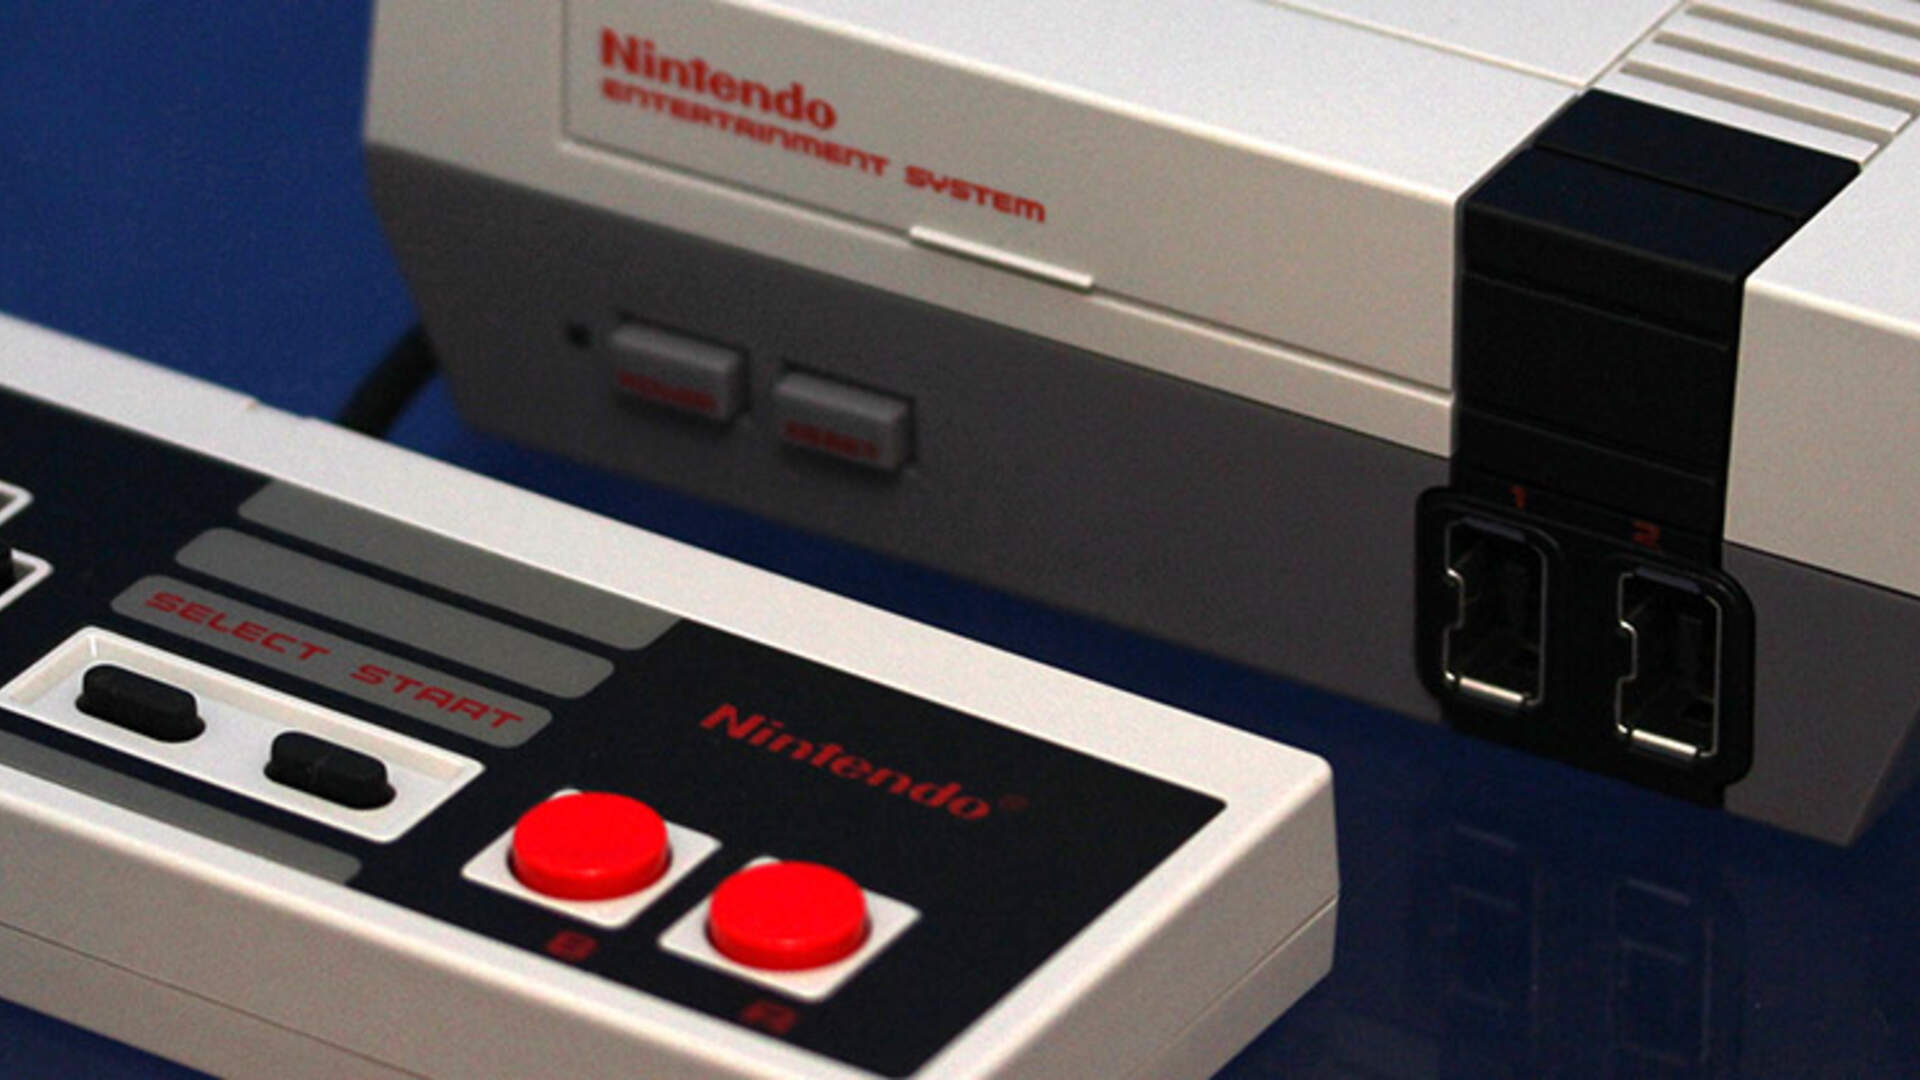 NES Classic Edition F.A.Q.: UPDATE: New Stock Coming in 2018! Everything You Need to Know About Nintendo's NES Mini